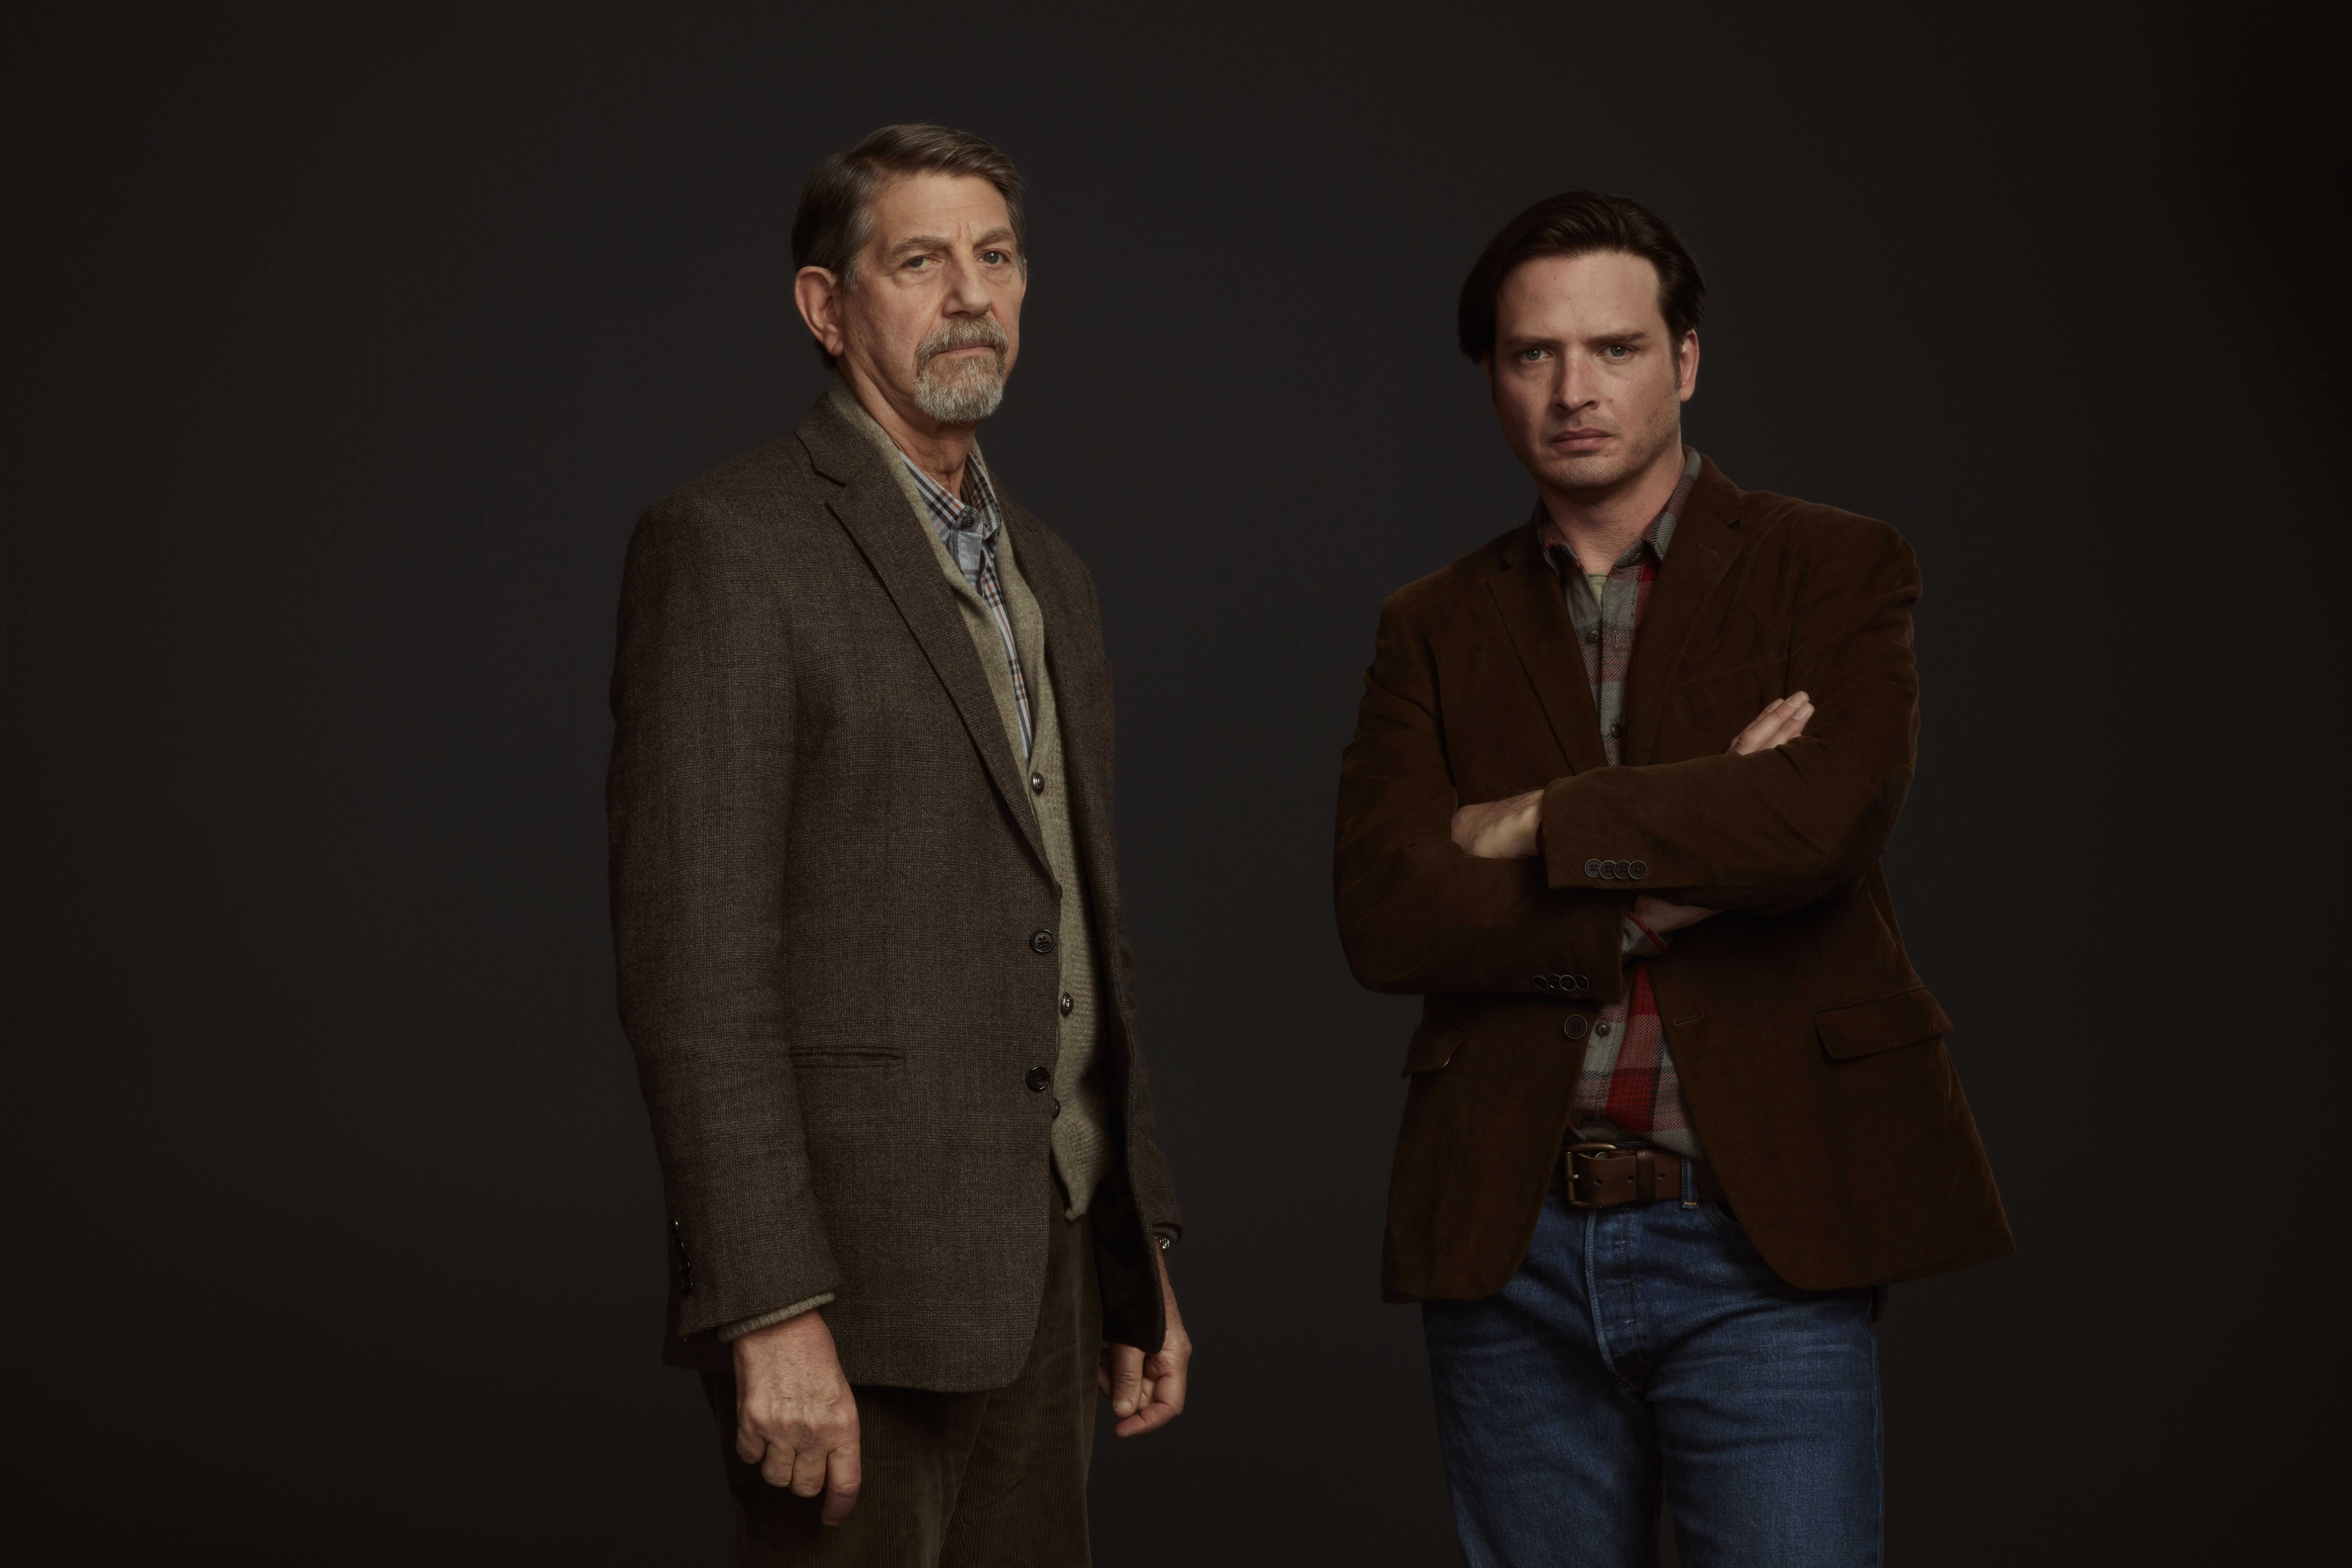 Peter Coyote as Henry Sullivan and Aiden Young as Luke Sullivan